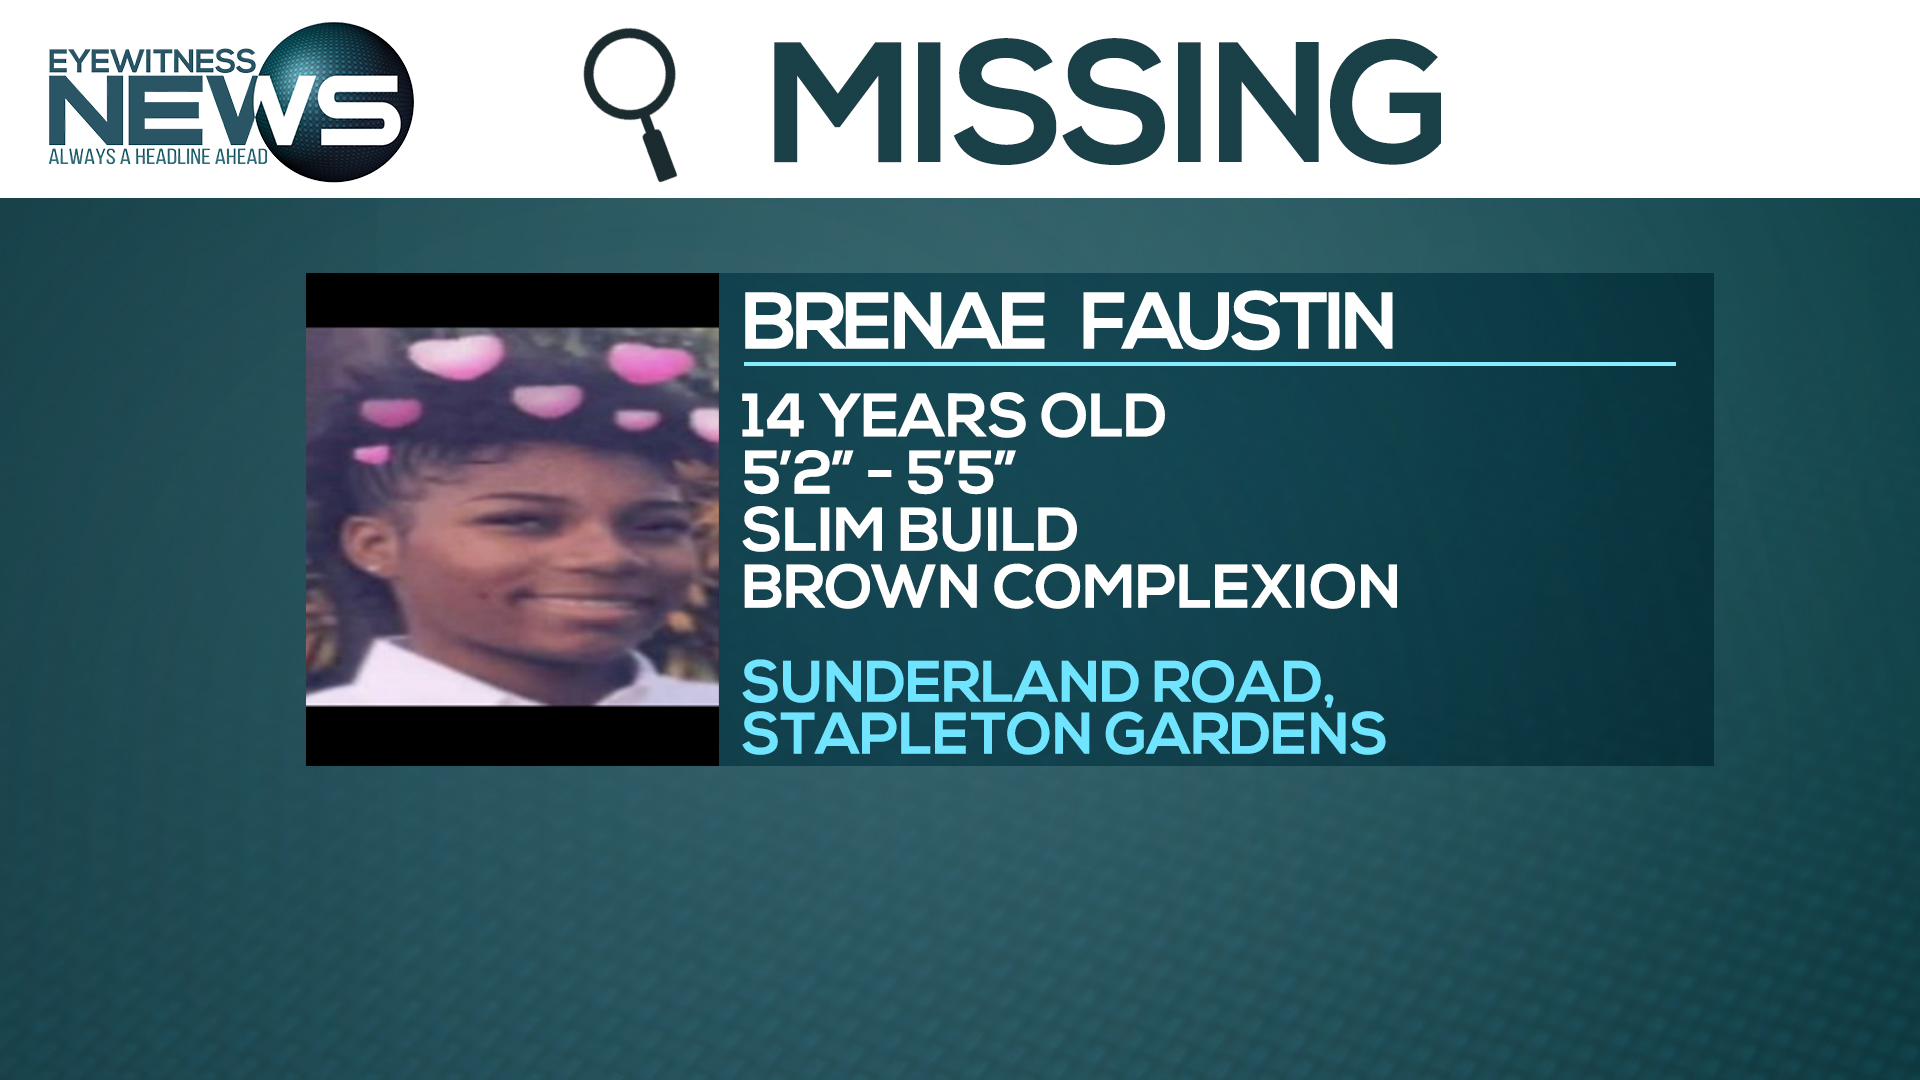 Police looking for missing girl